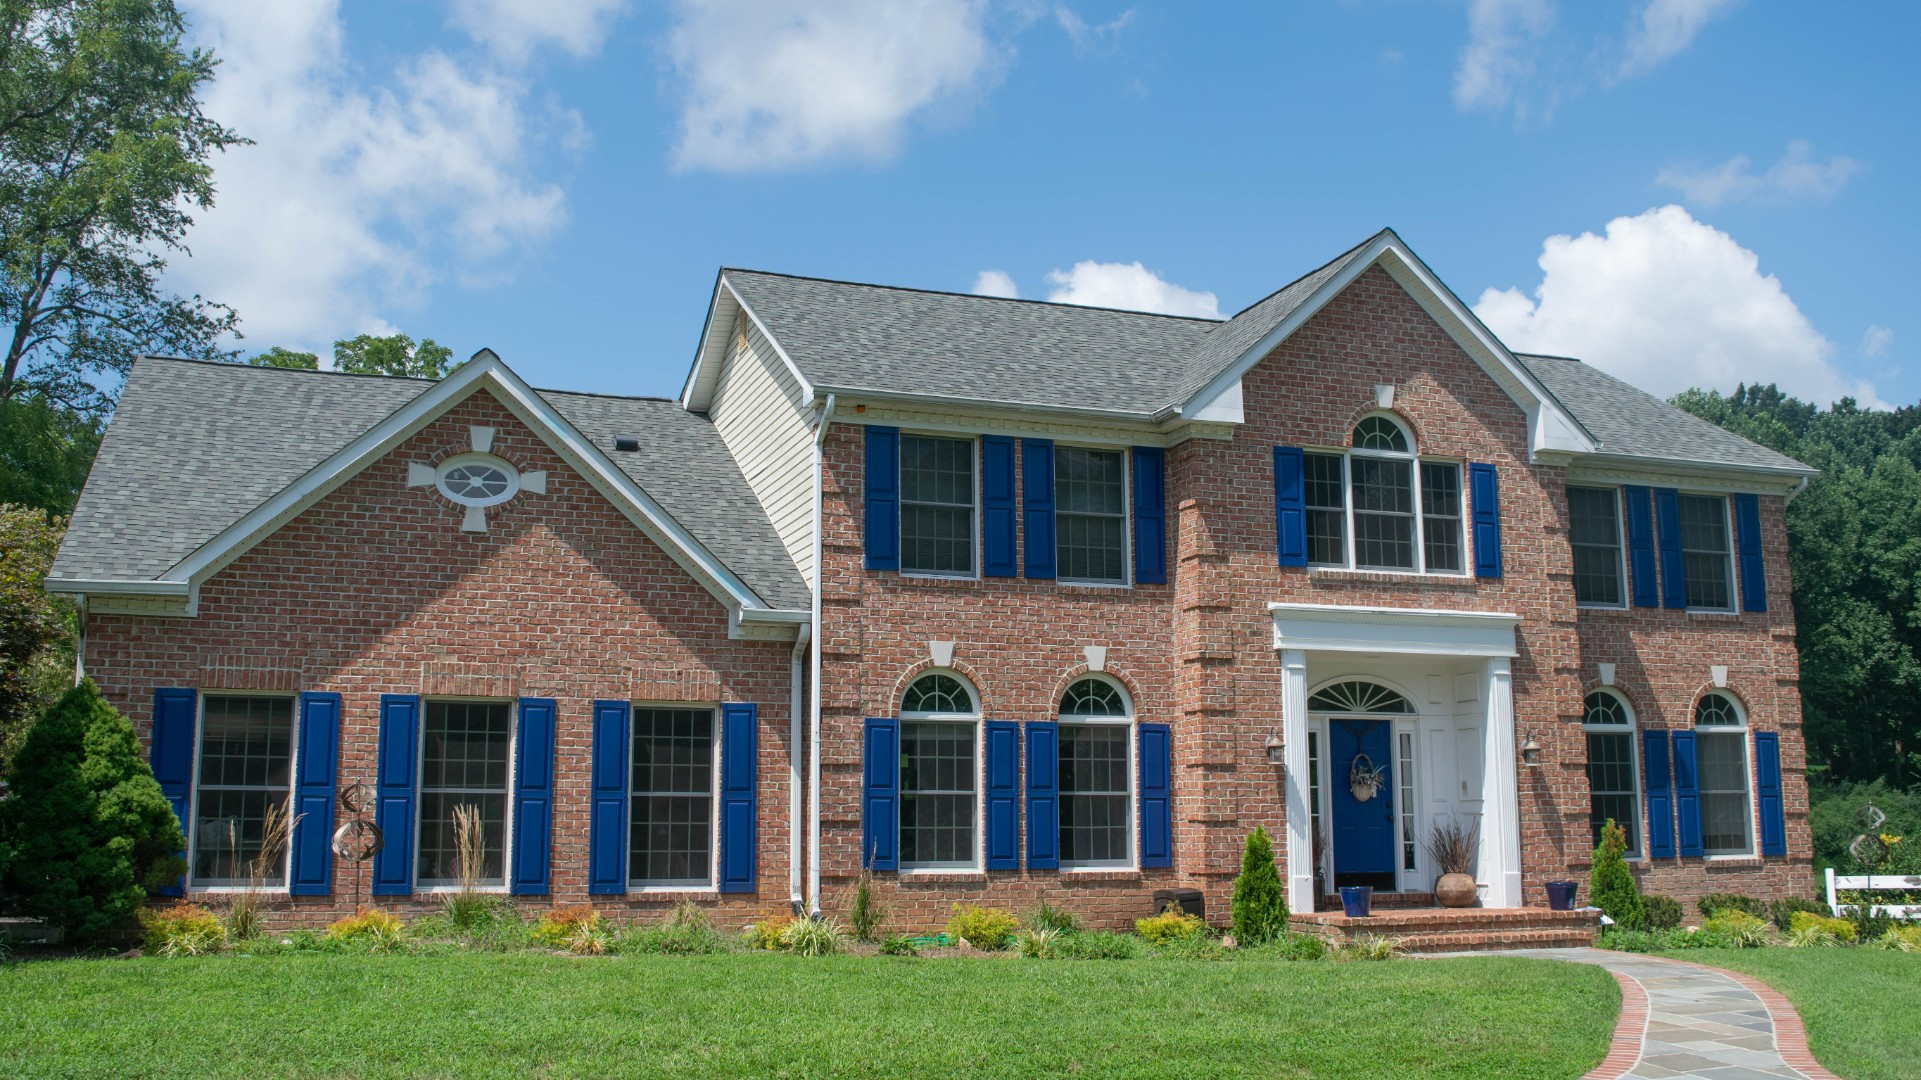 SmartRoof - Residential, Commercial Mount Ephraim NJ Roofing Contractors